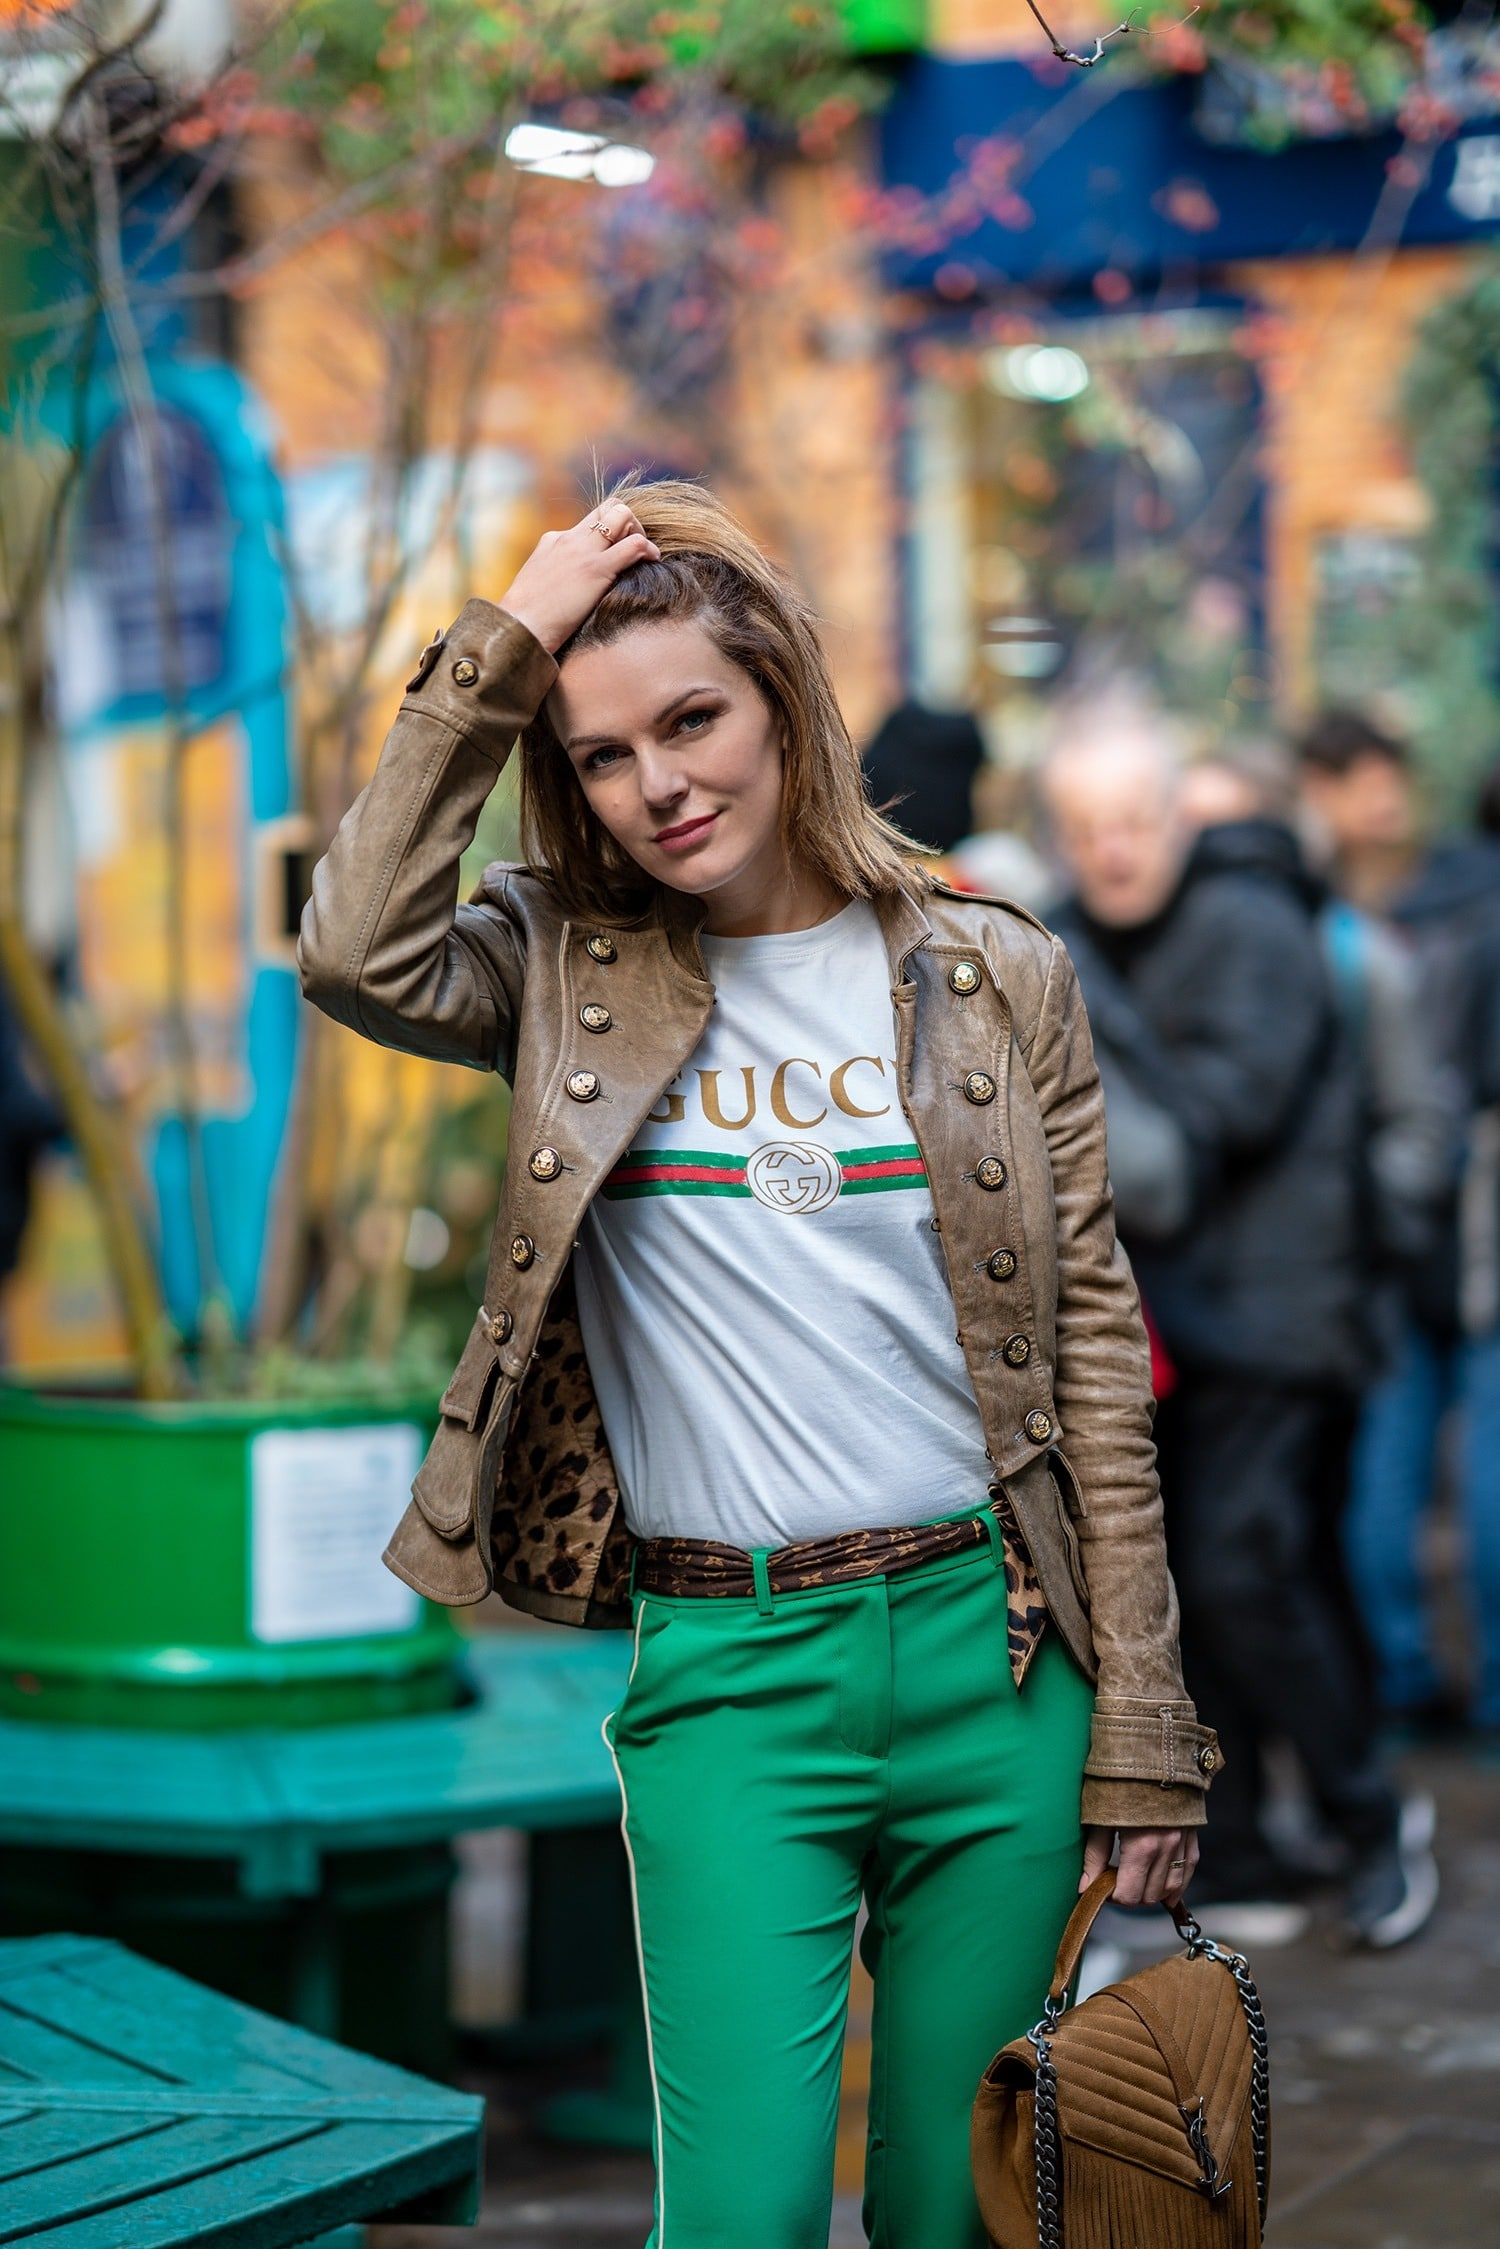 Leather jacket green pants and Gucci t shirt